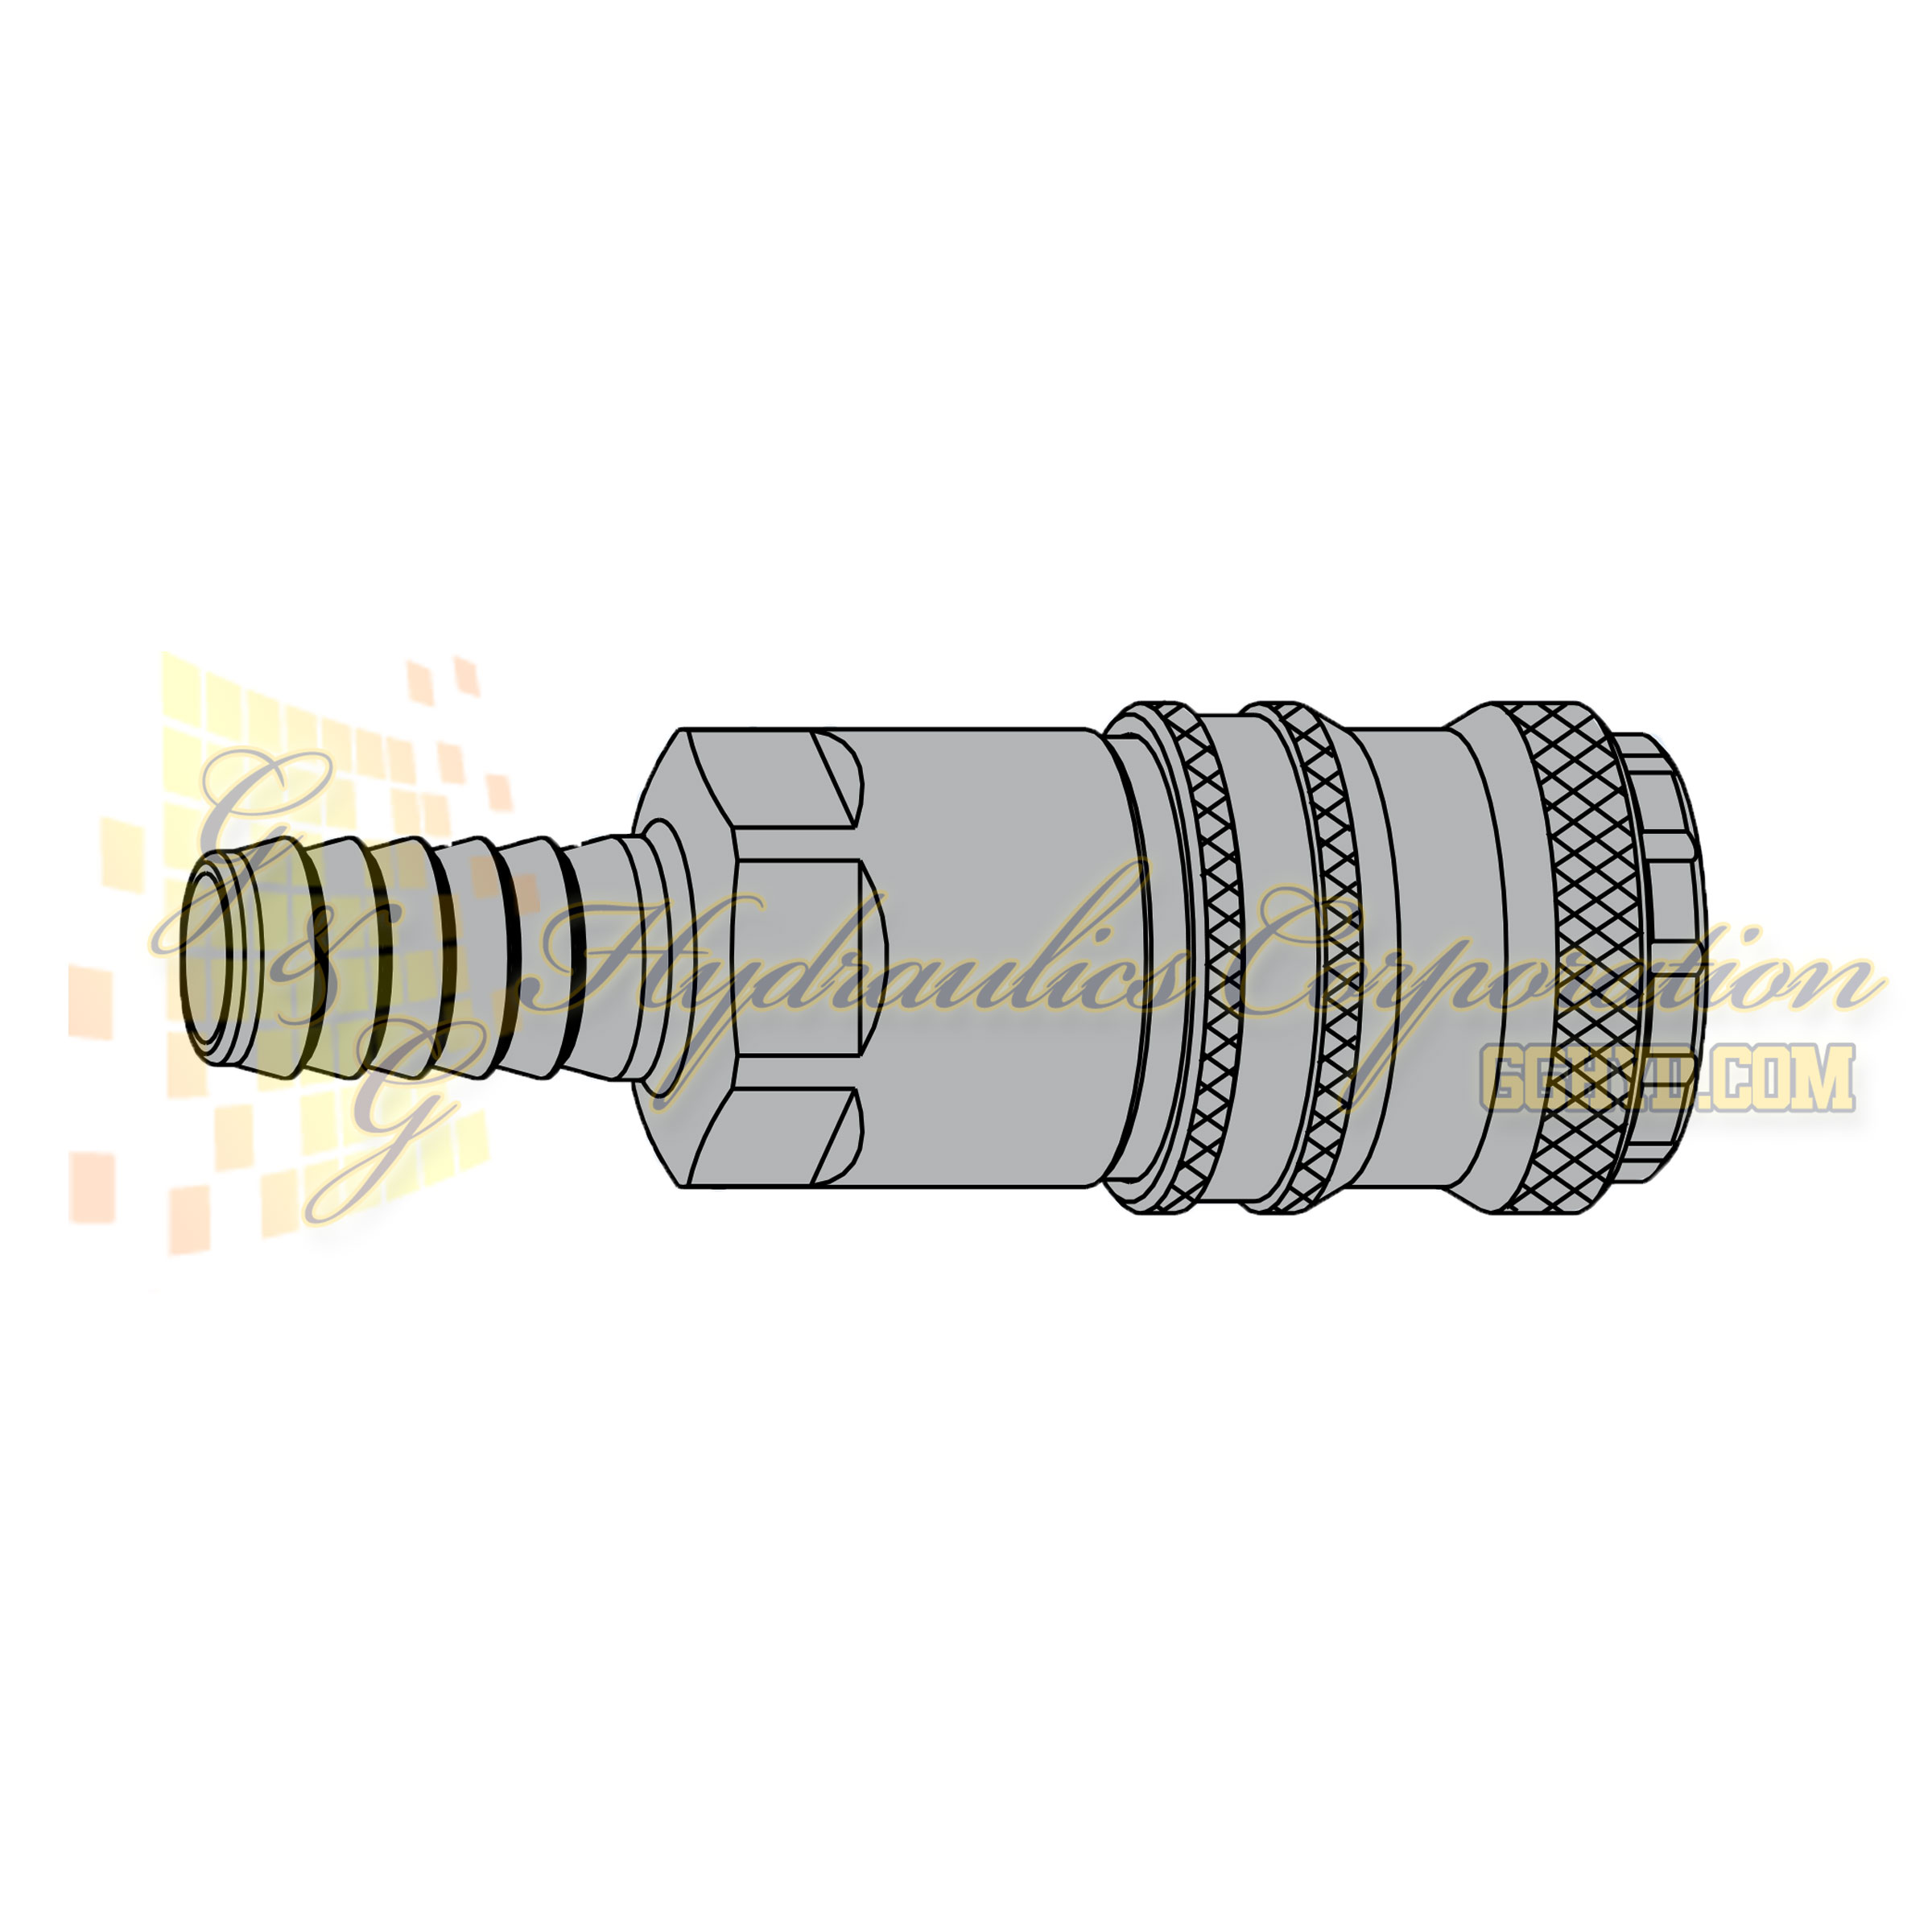 "10-320-1003 CEJN Standard and Vented Safety Coupler, 8mm (5/16"") Hose Connection"